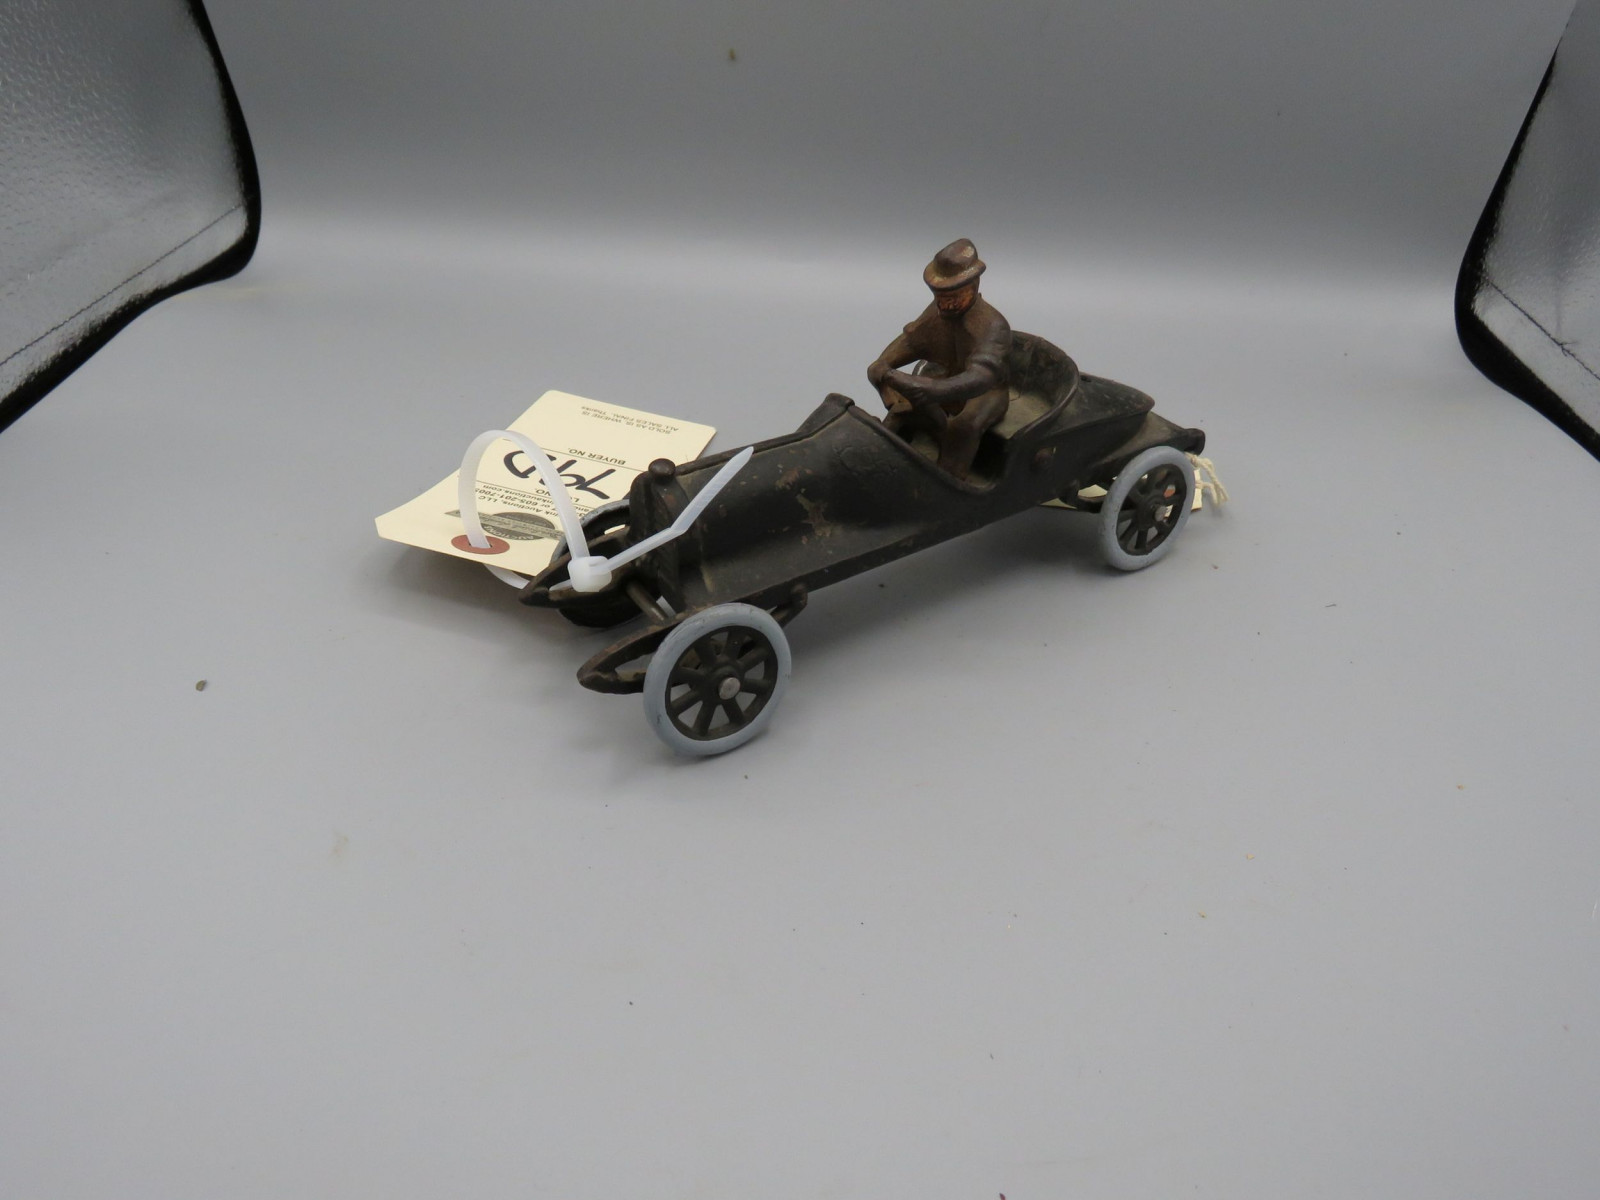 Cast Iron Vintage Race Car with Driver @1910-13 Approx. 4 inches - Image 2